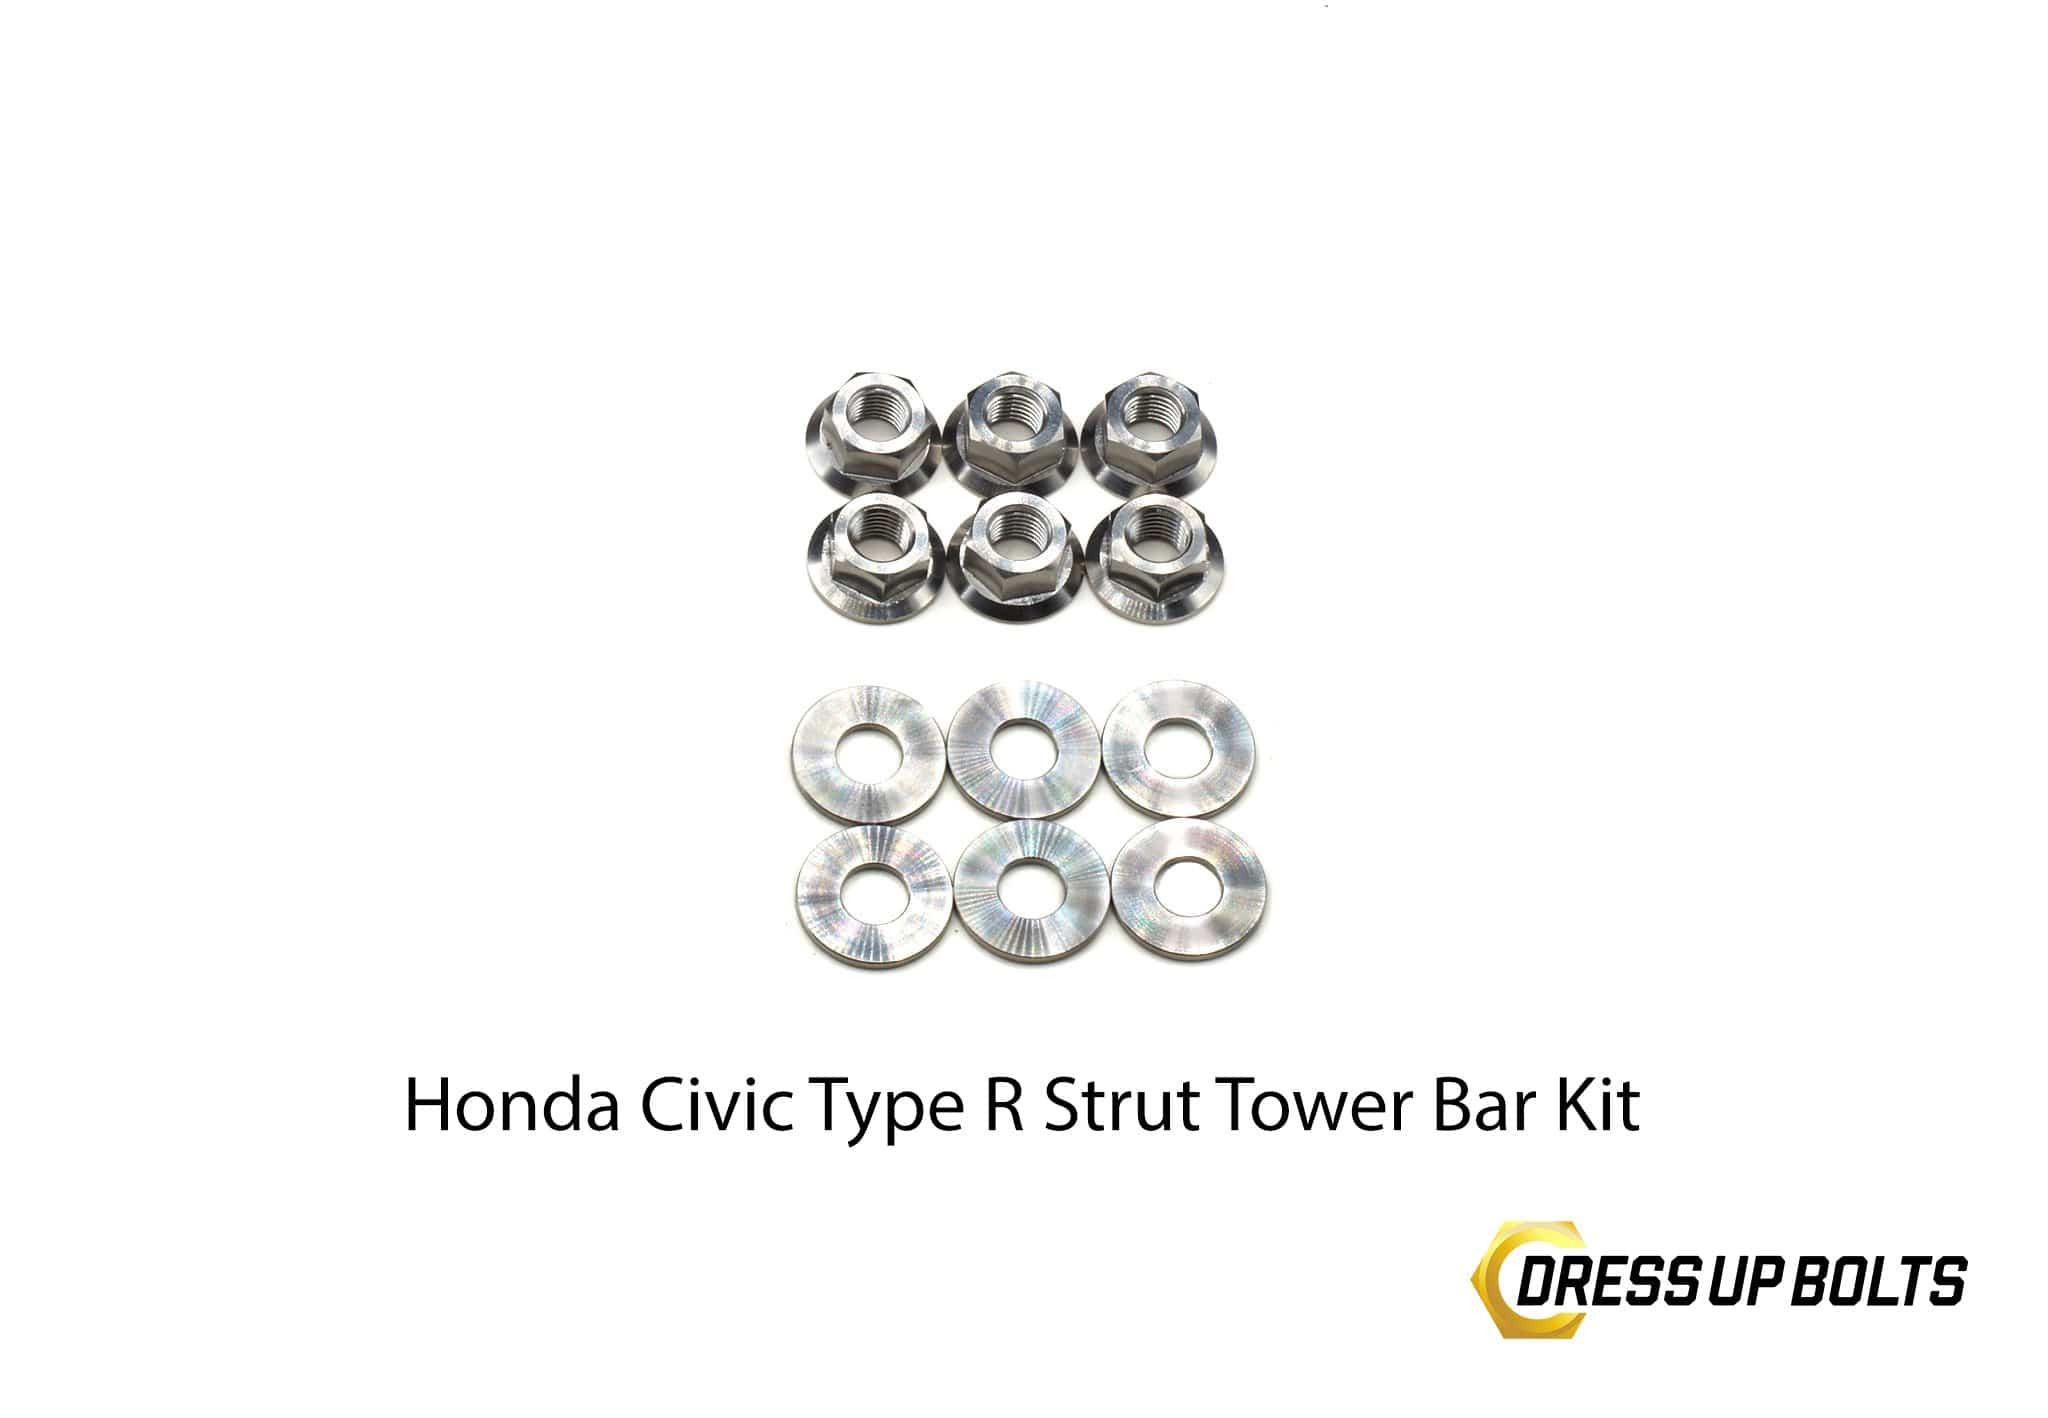 Honda Civic Type R (2017-2019) Titanium Dress Up Bolt Strut Tower Bar Kit - DressUpBolts.com